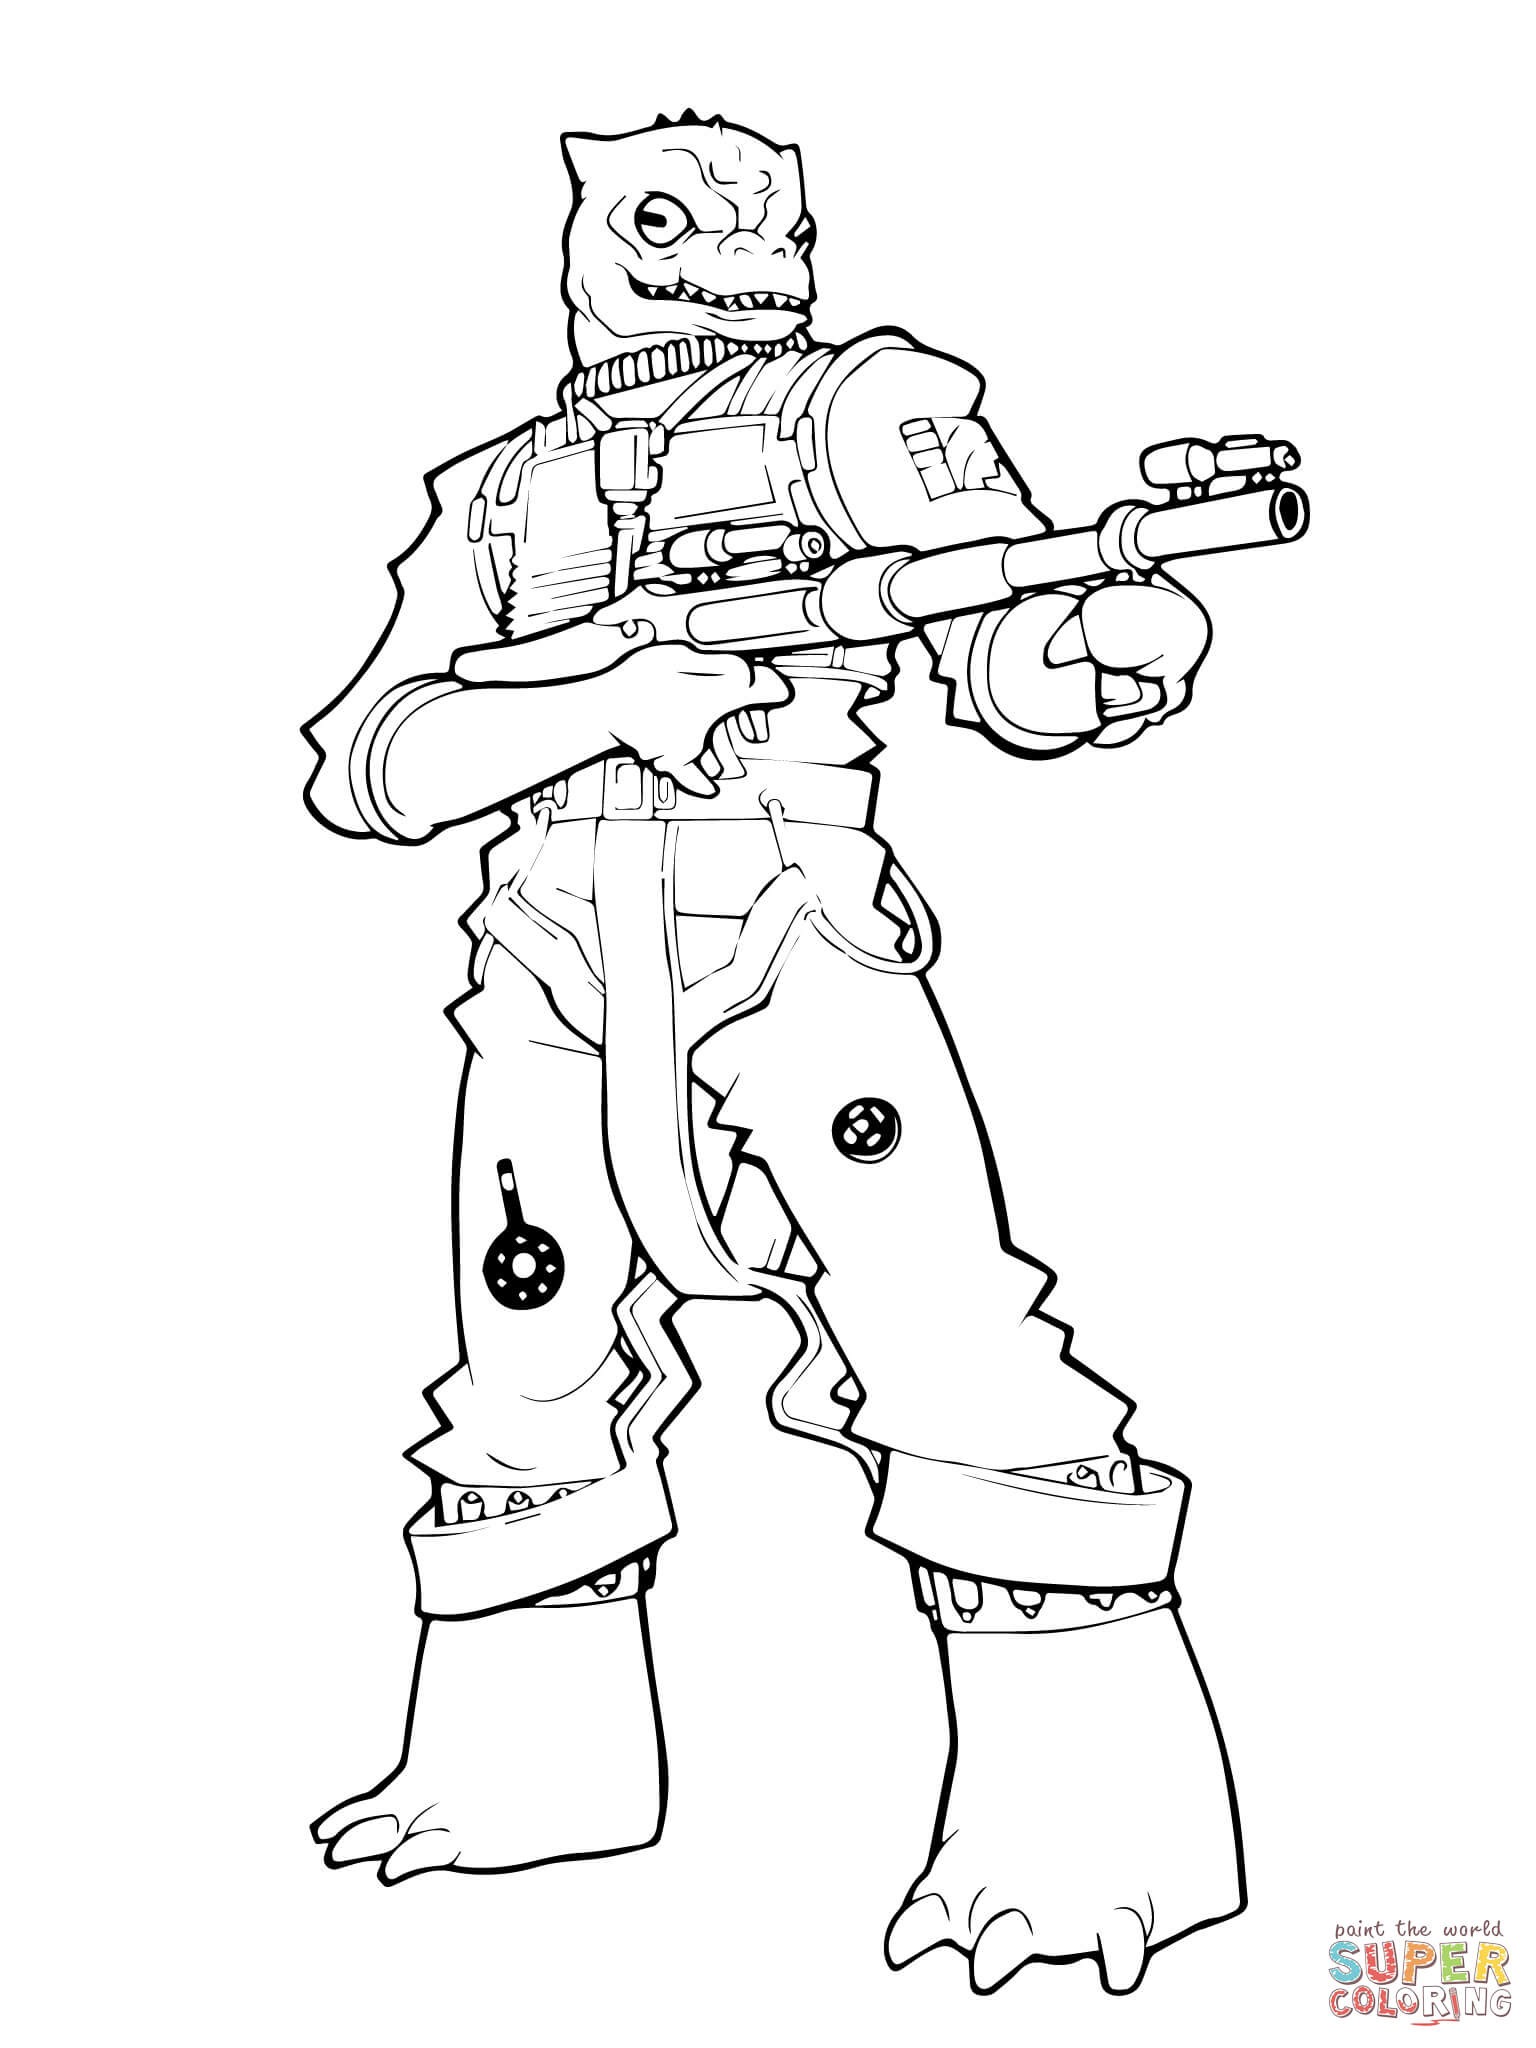 clone wars coloring the clone trooper hold a gun in star wars coloring page clone wars coloring